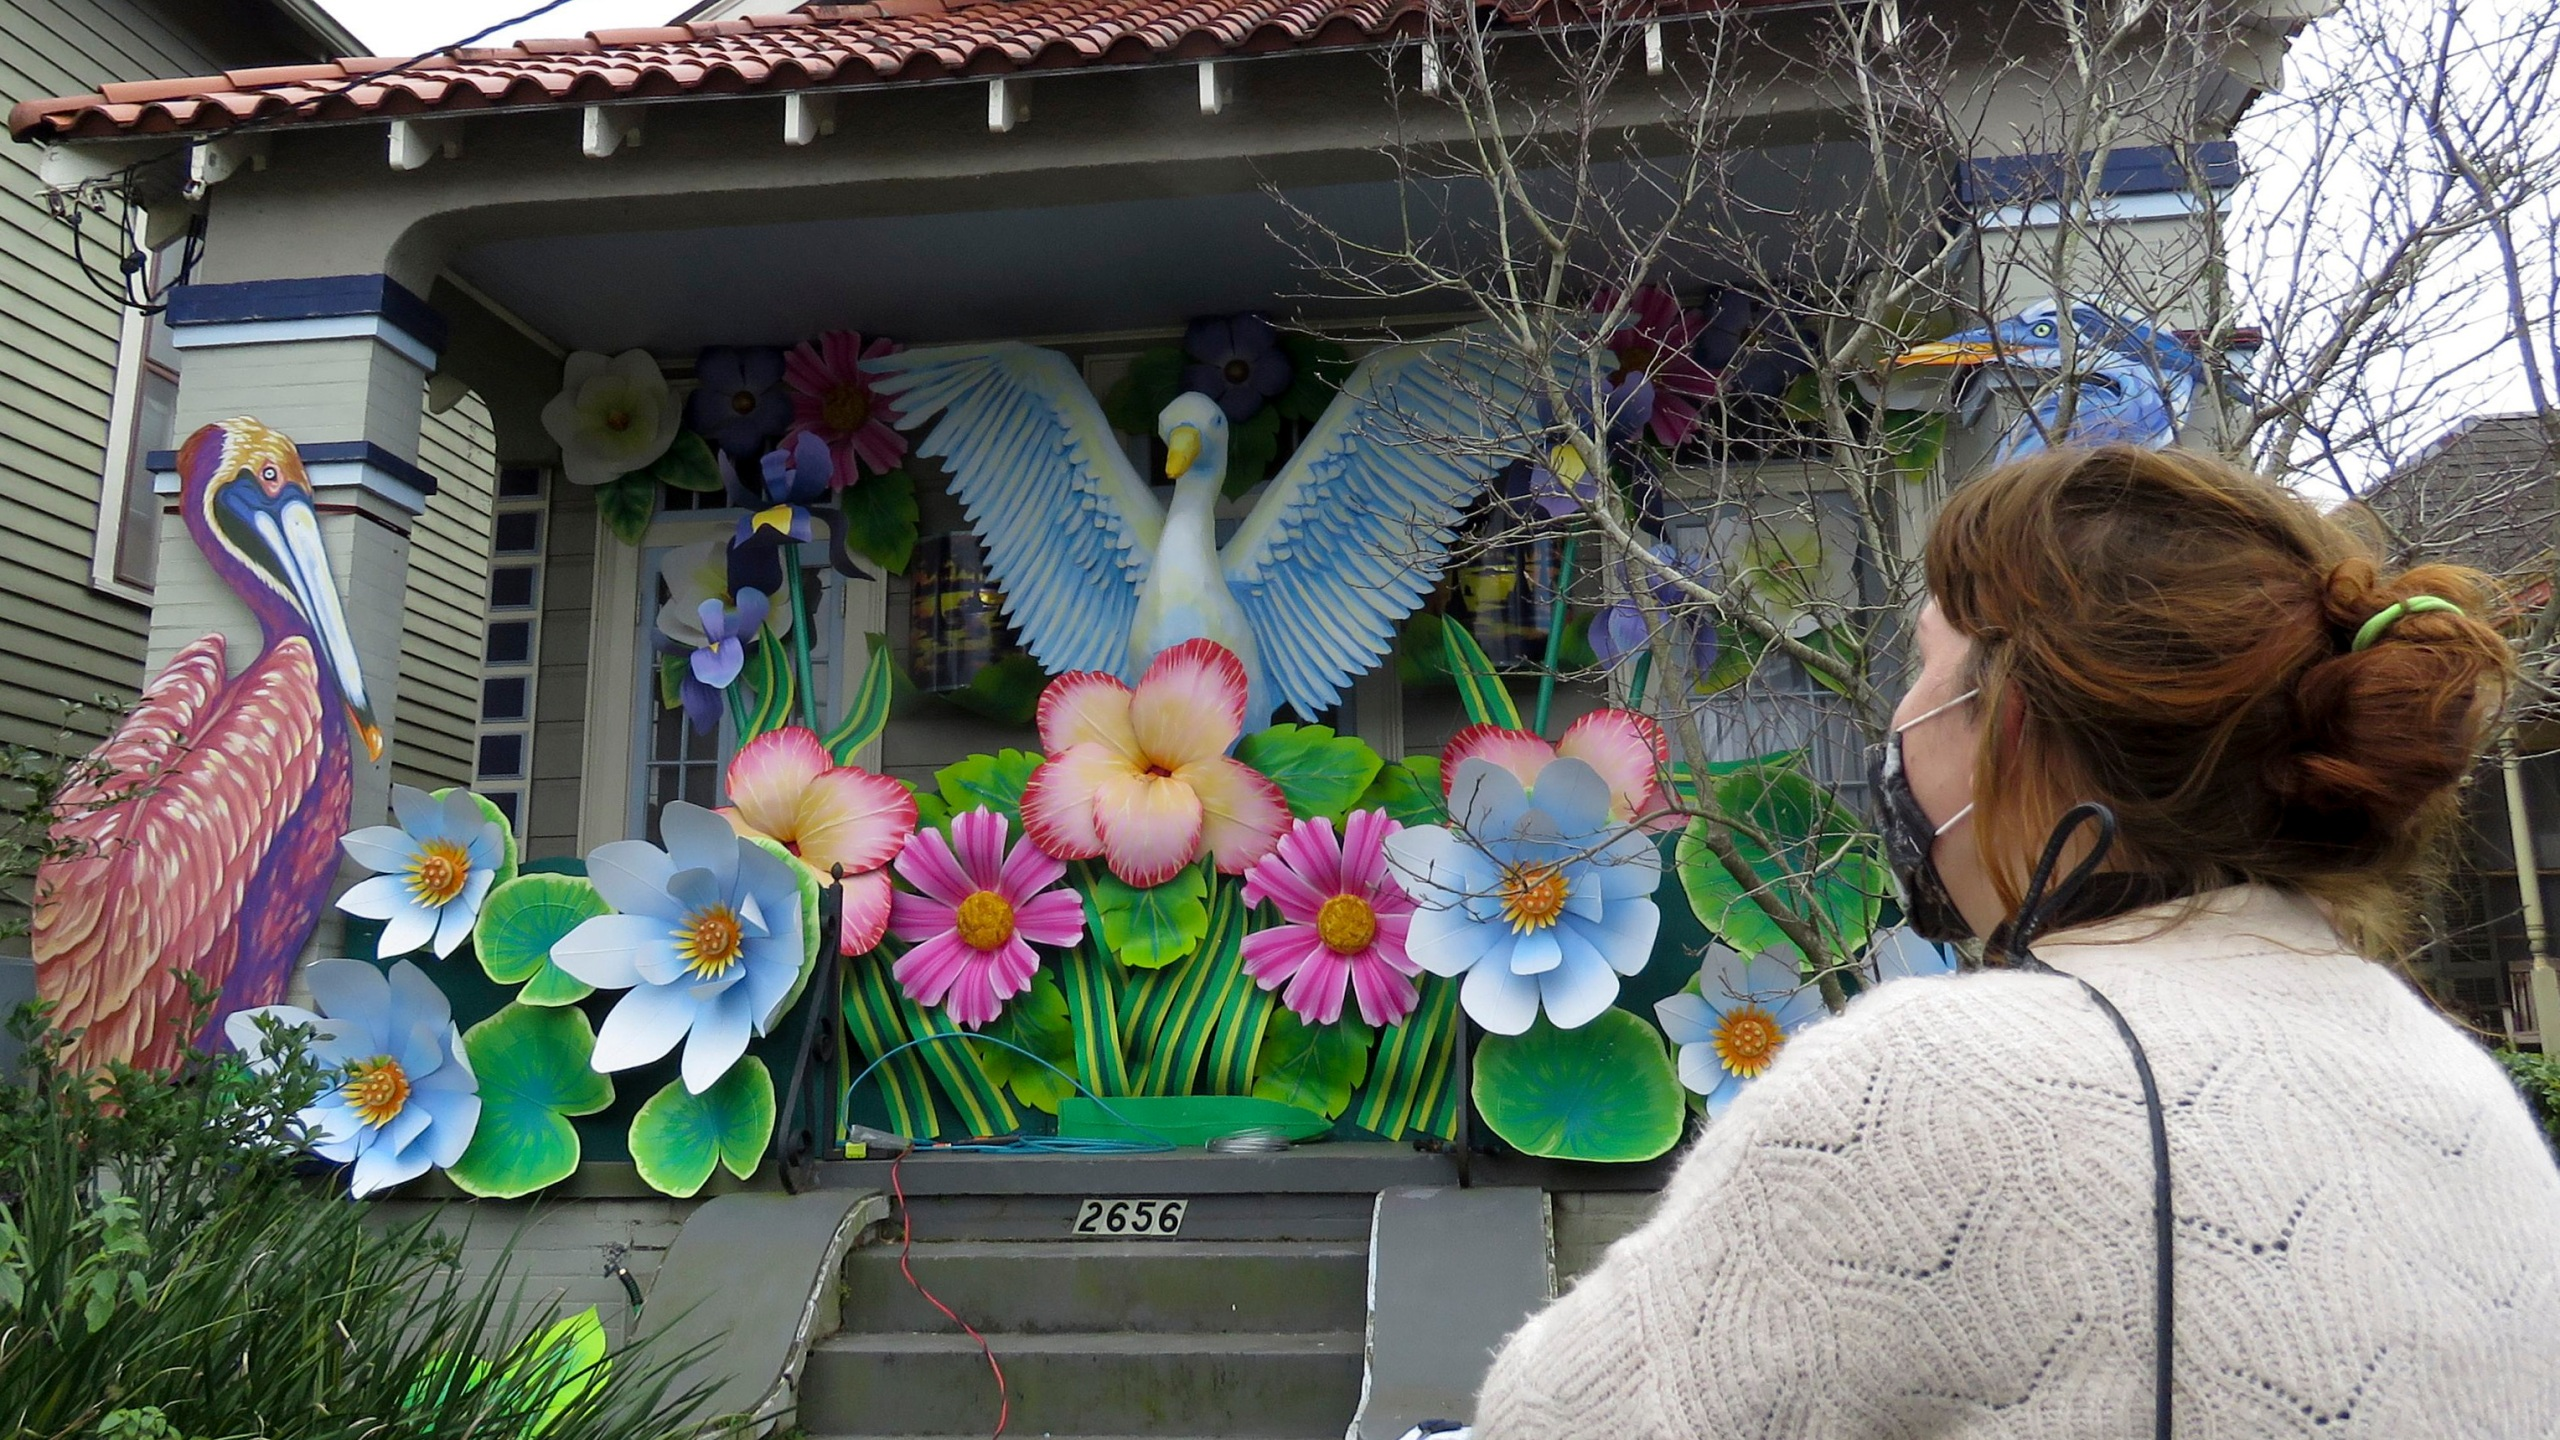 Designer Caroline Thomas looks at a house decorated like a parade float in New Orleans on Friday, Jan. 8, 2021. All around the city, thousands of houses are being decorated as floats because the coronavirus pandemic has canceled parades that usually take place on Mardi Gras. (AP Photo/Janet McConnaughey)